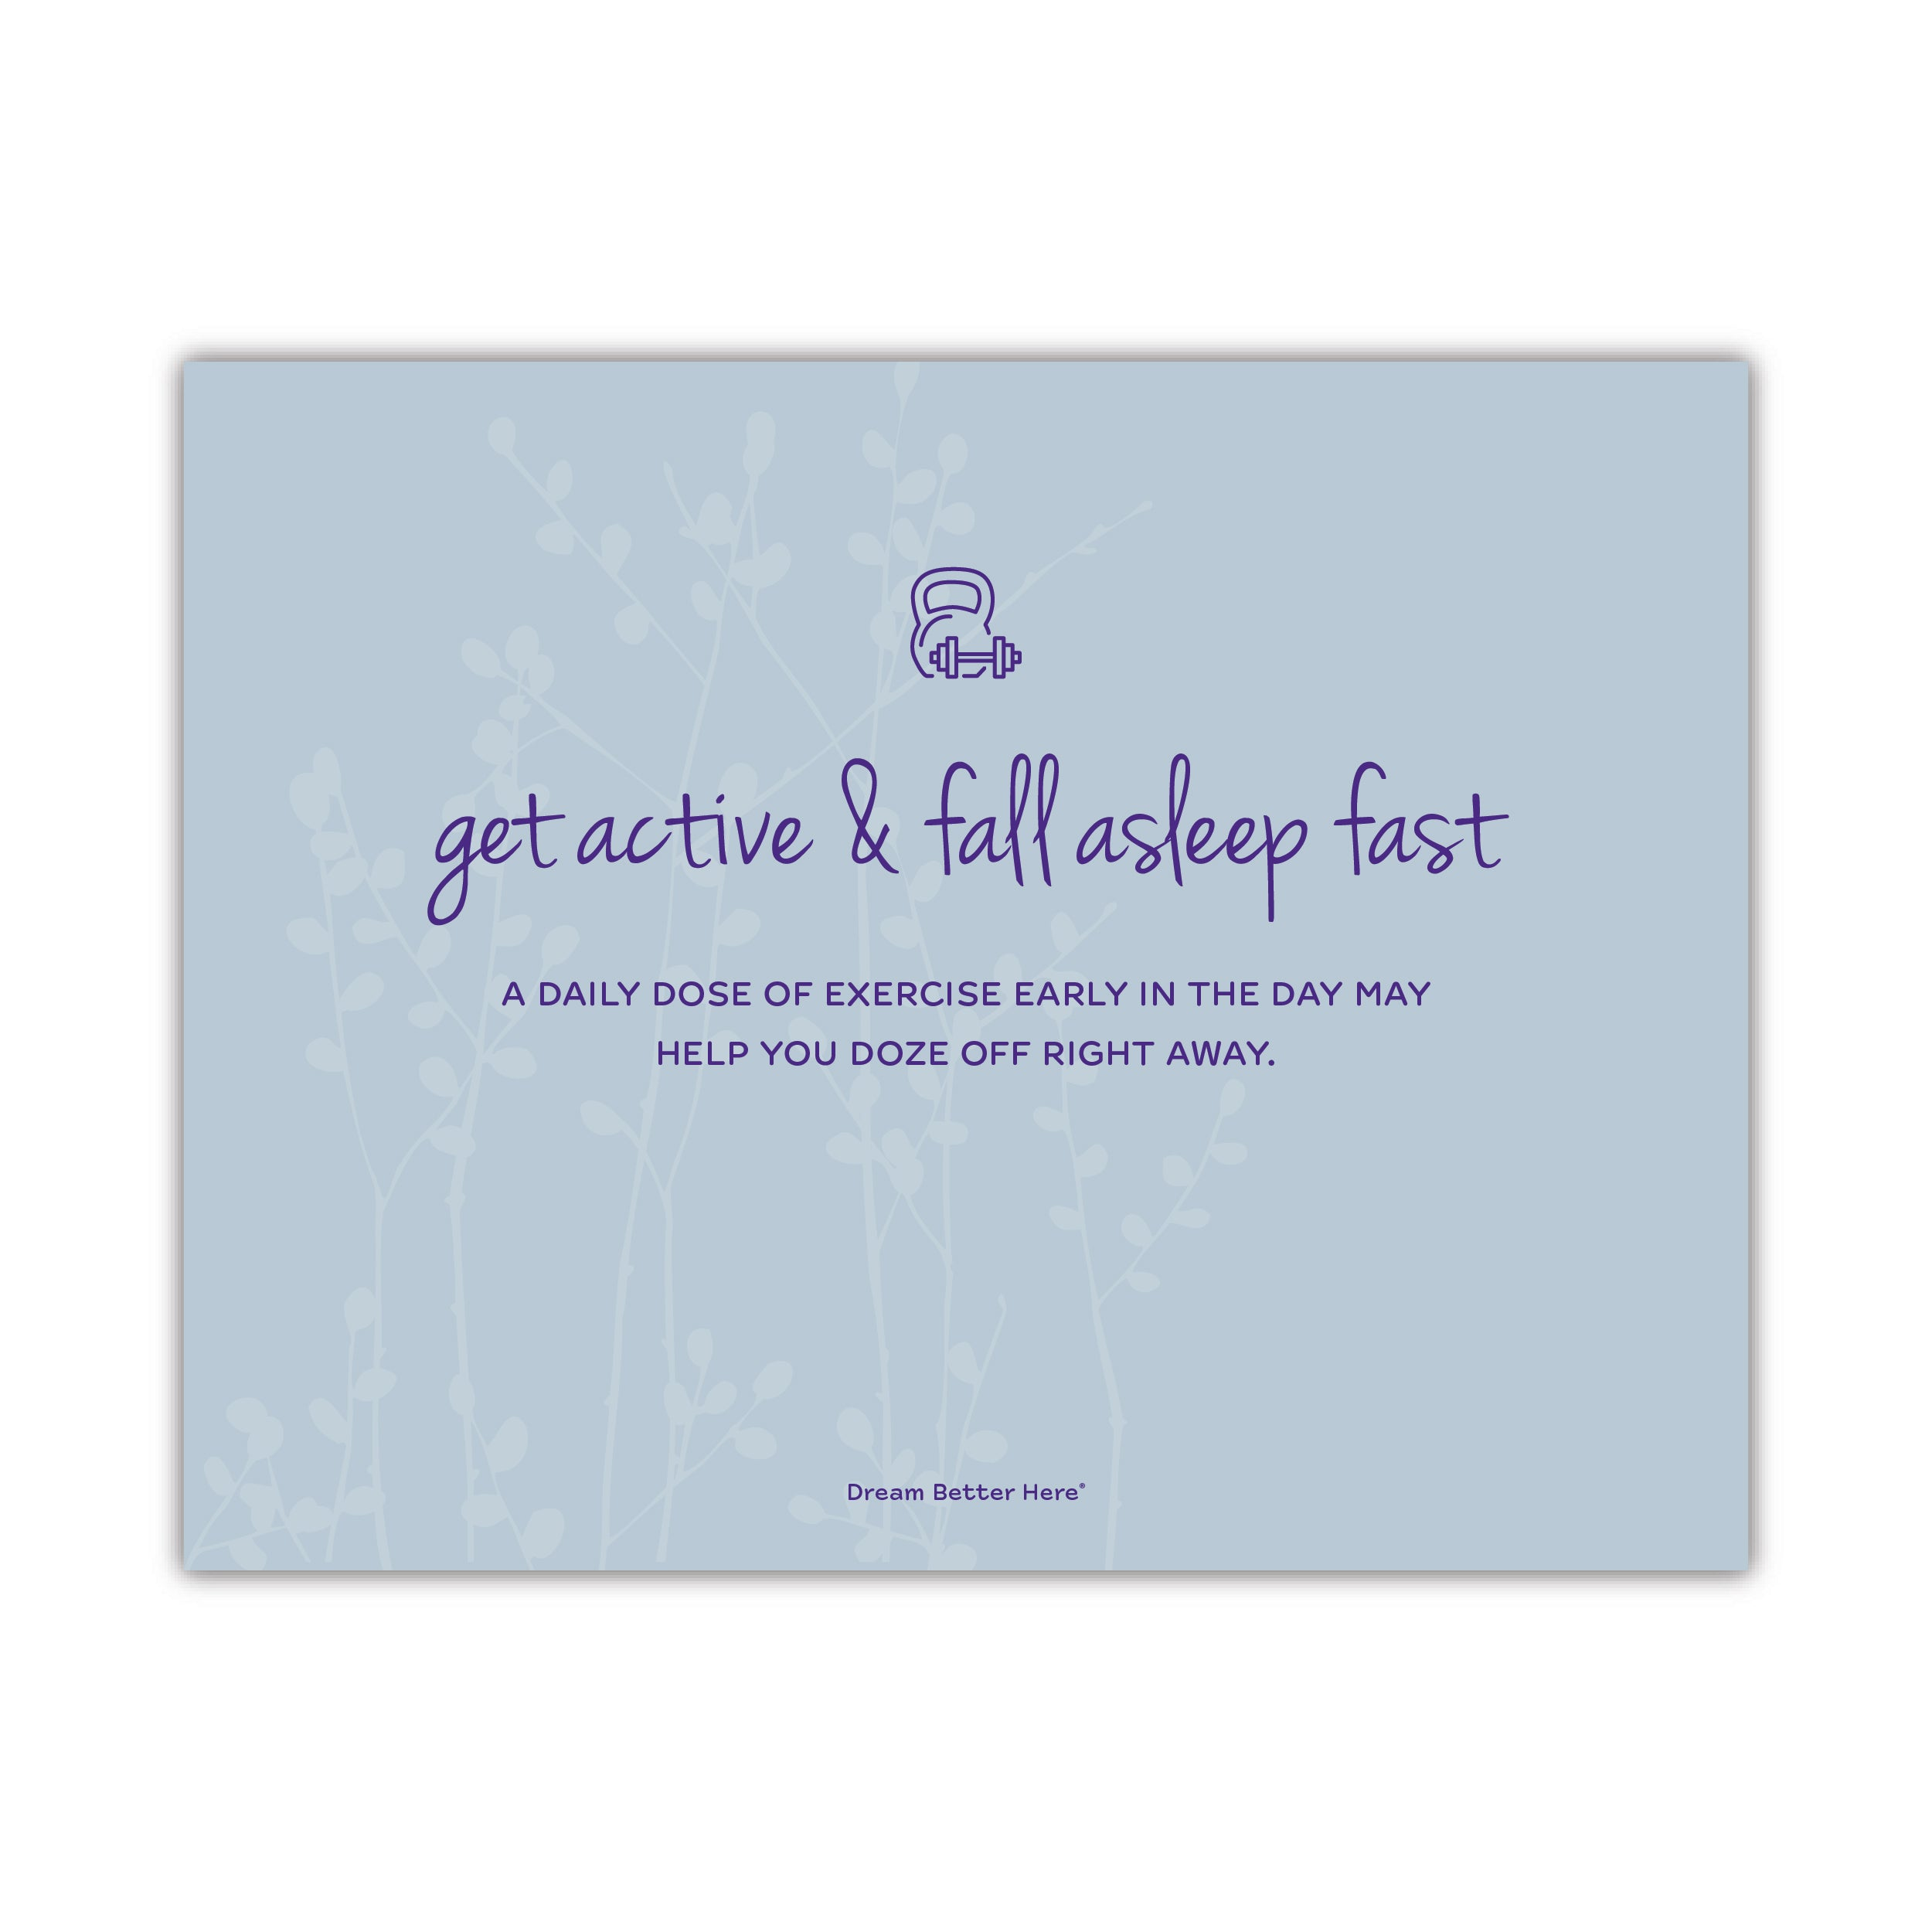 Sleep Dream Tips Lobby Poster (Set of 6)